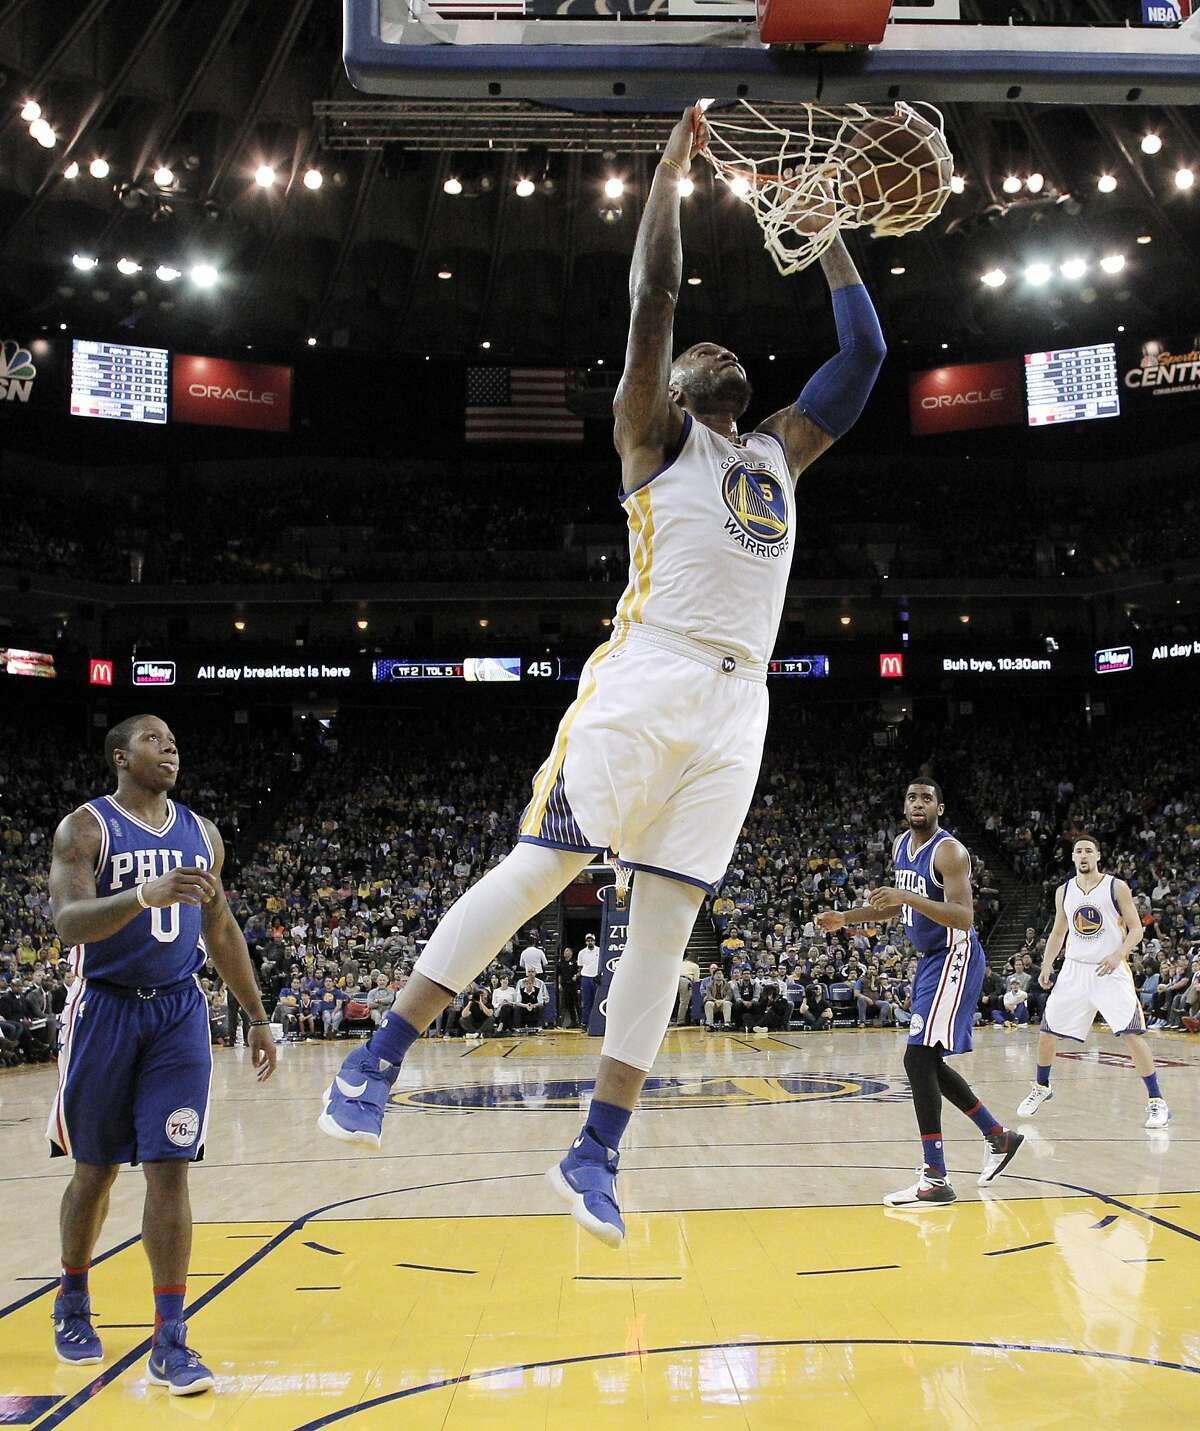 Marreese Speights (5) dunks in the first half as the Golden State Warriors played the Philadelphia 76ers at Oracle Arena in Oakland, Calif., on Sunday, March 27, 2016.